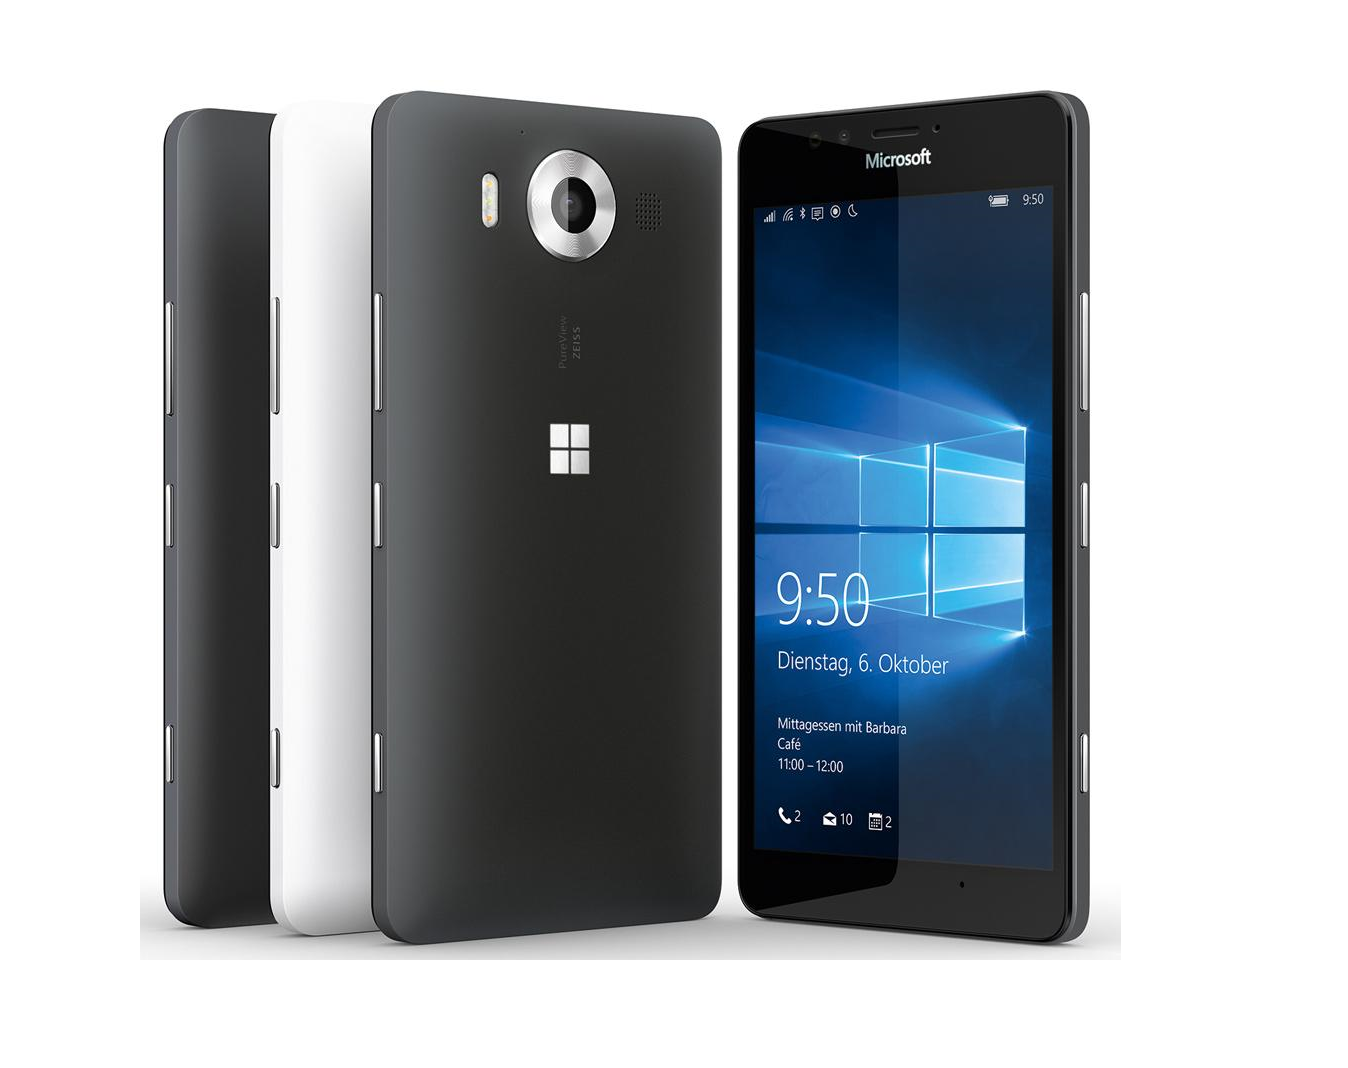 Photo of Microsoft's new generation of smartphones was revealed ahead of time